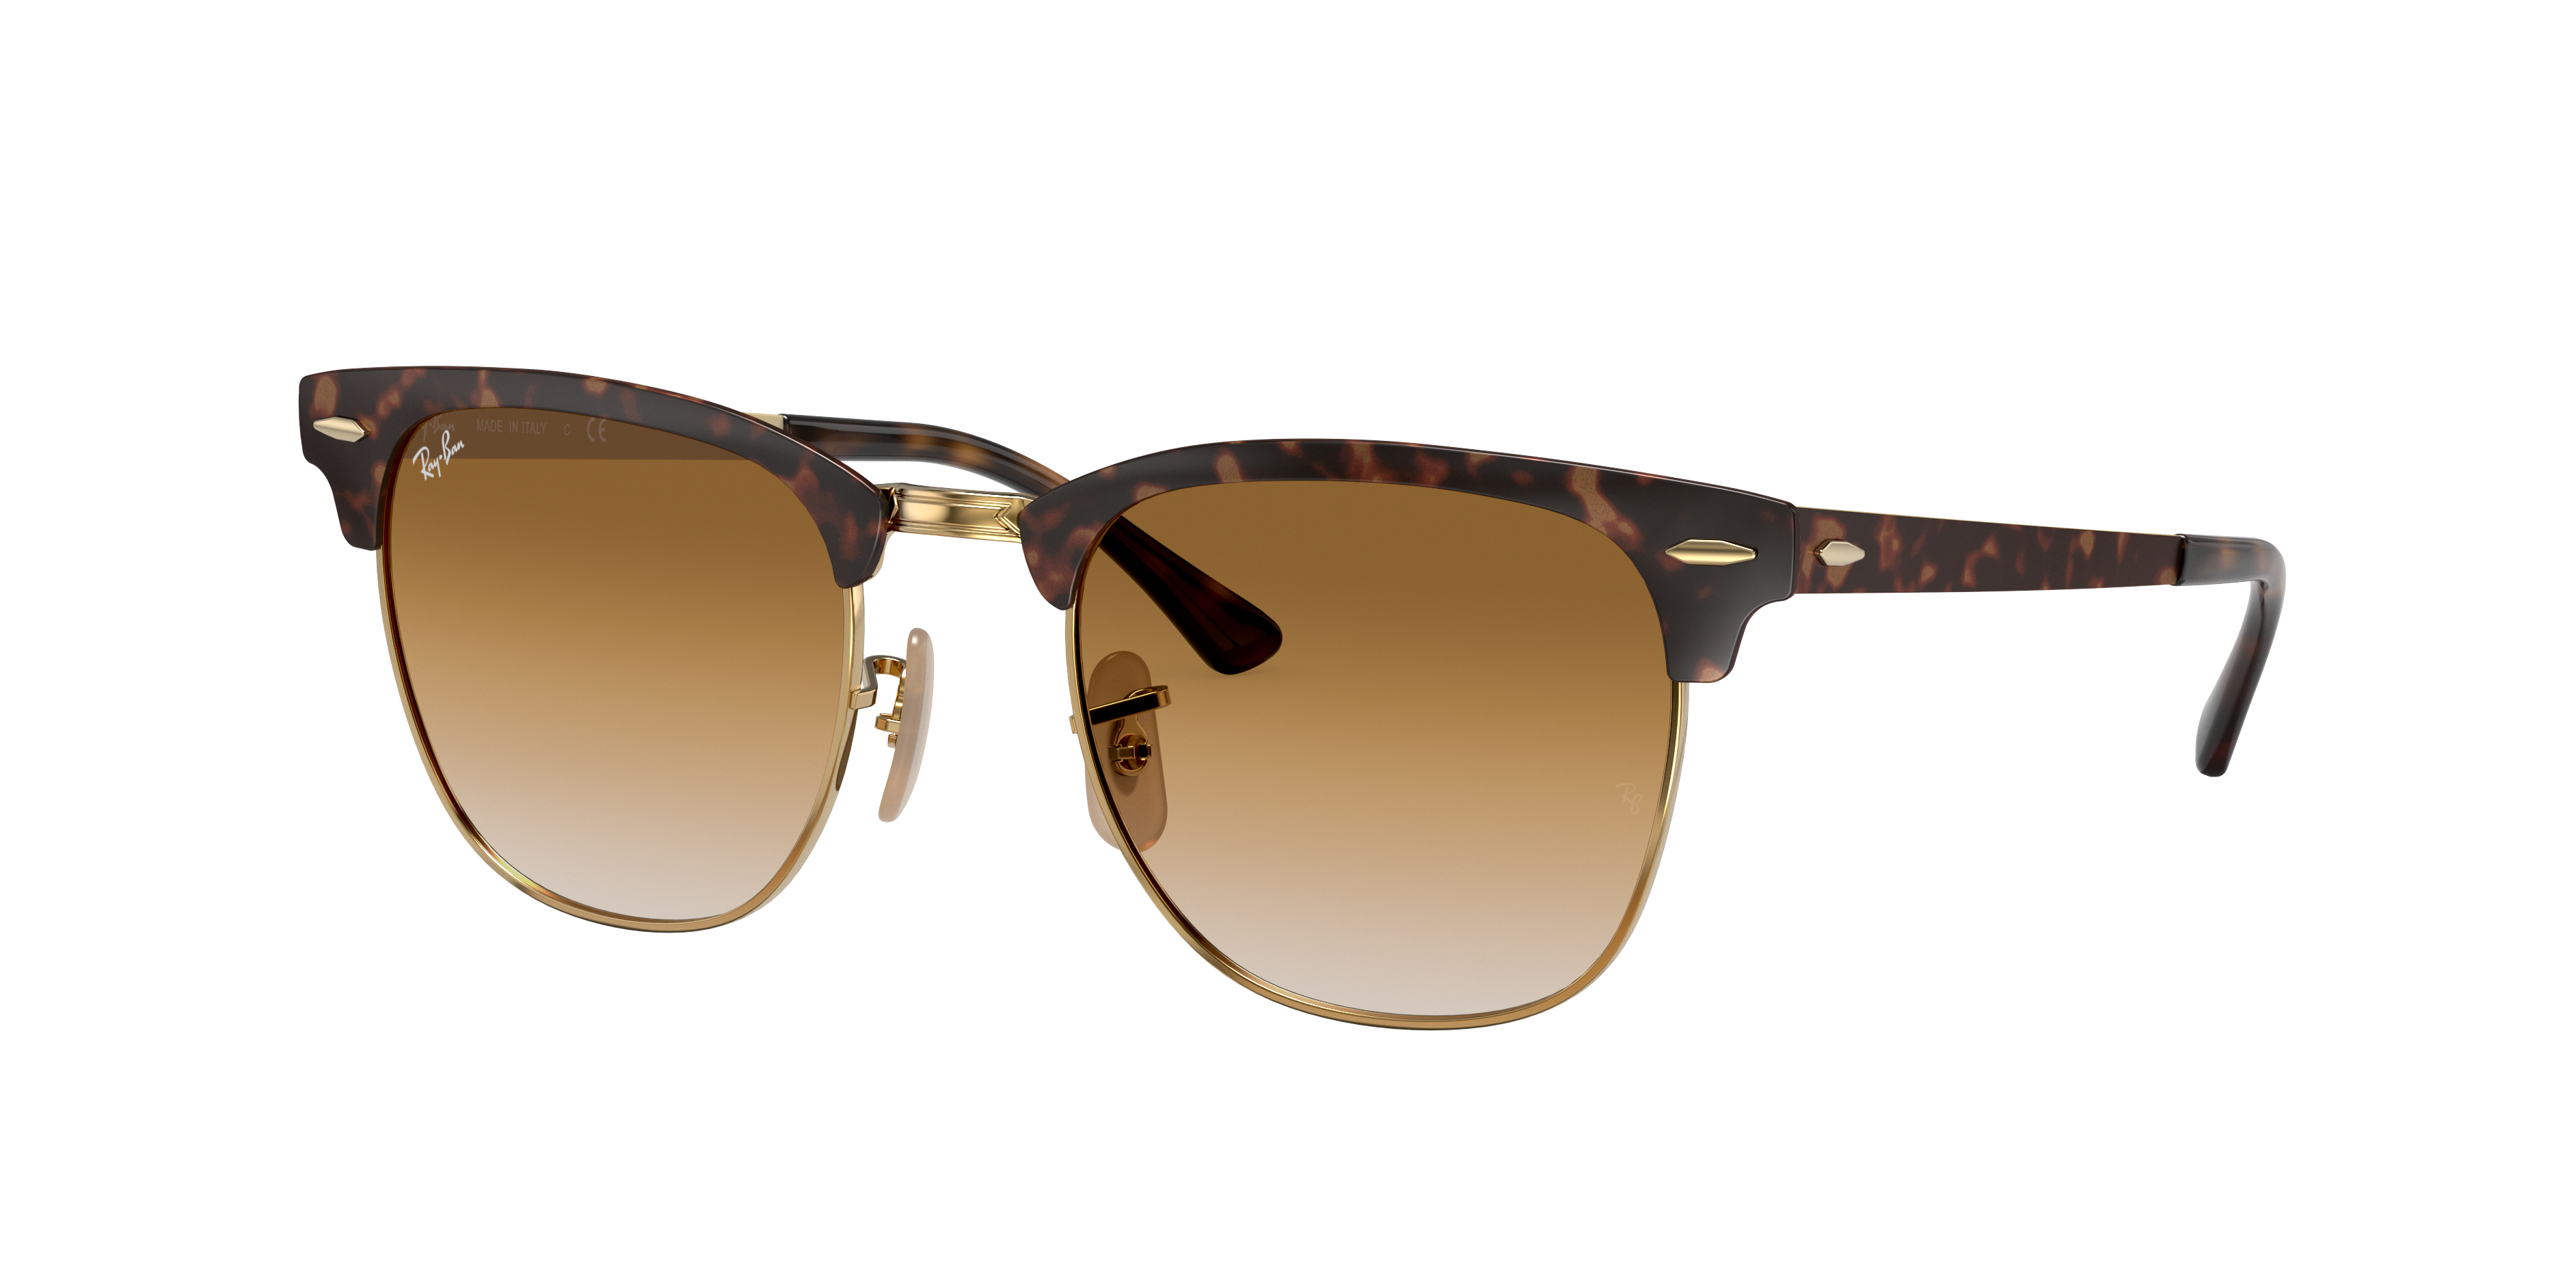 Ray-Ban Clubmaster Metal Tortoise, Brown Lenses - RB3716